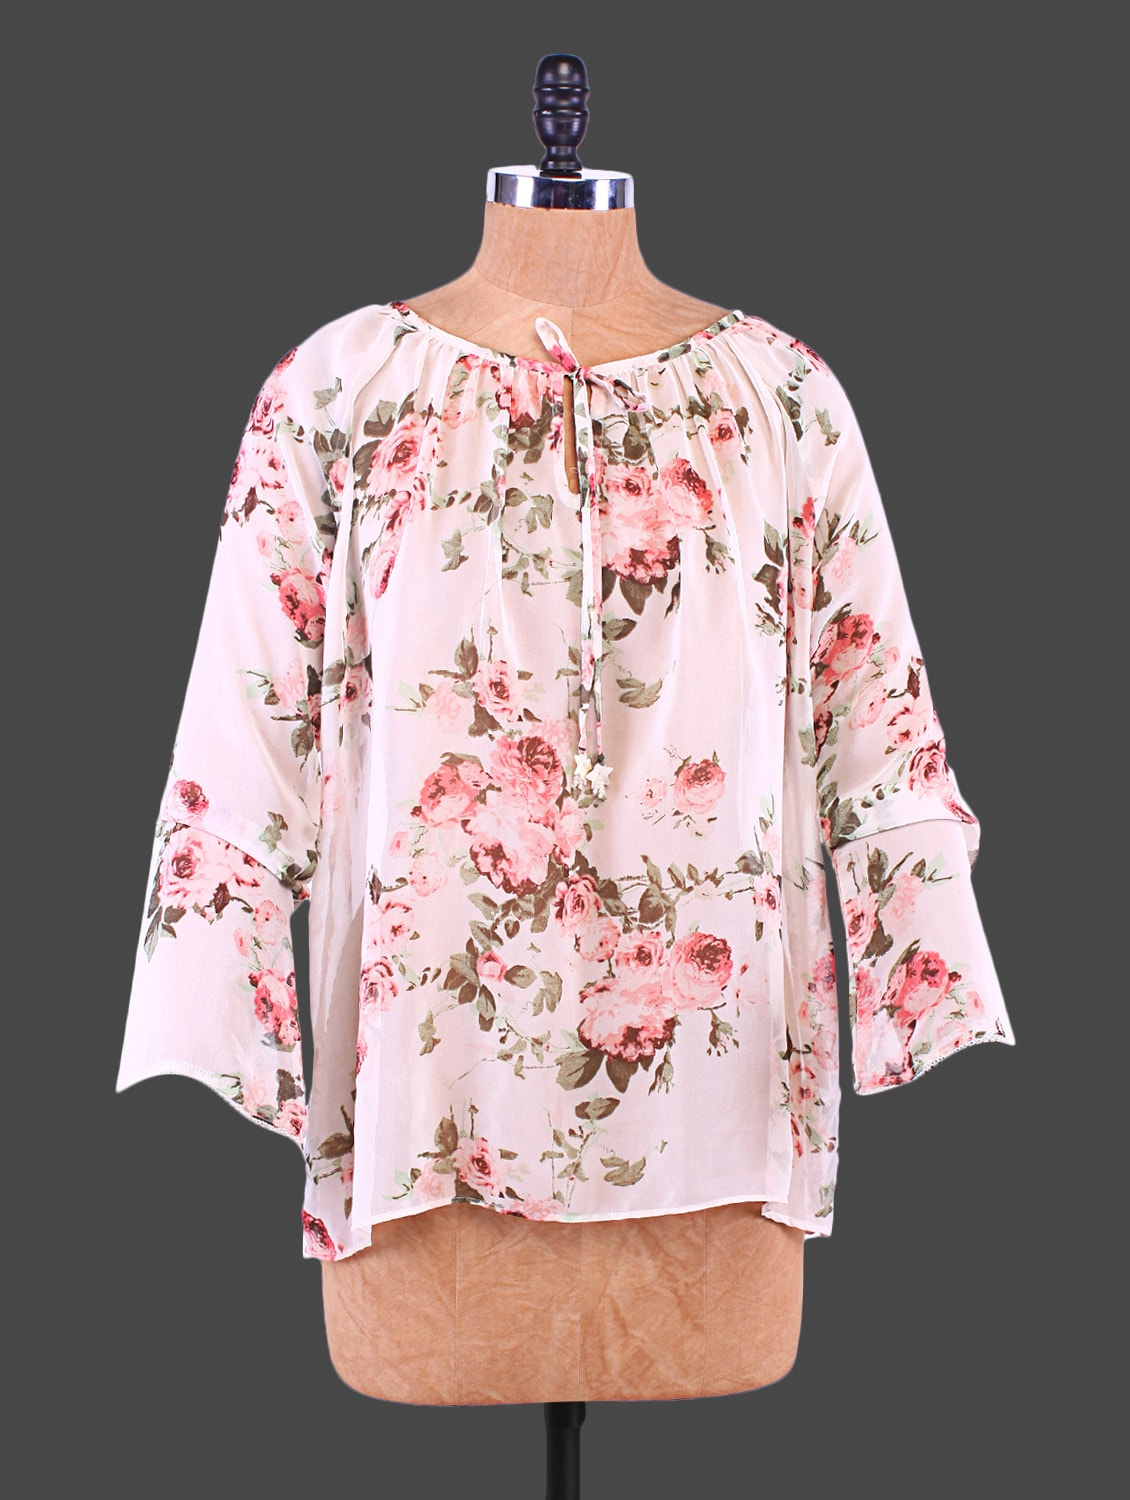 White Rose Printed Polyester Top - By